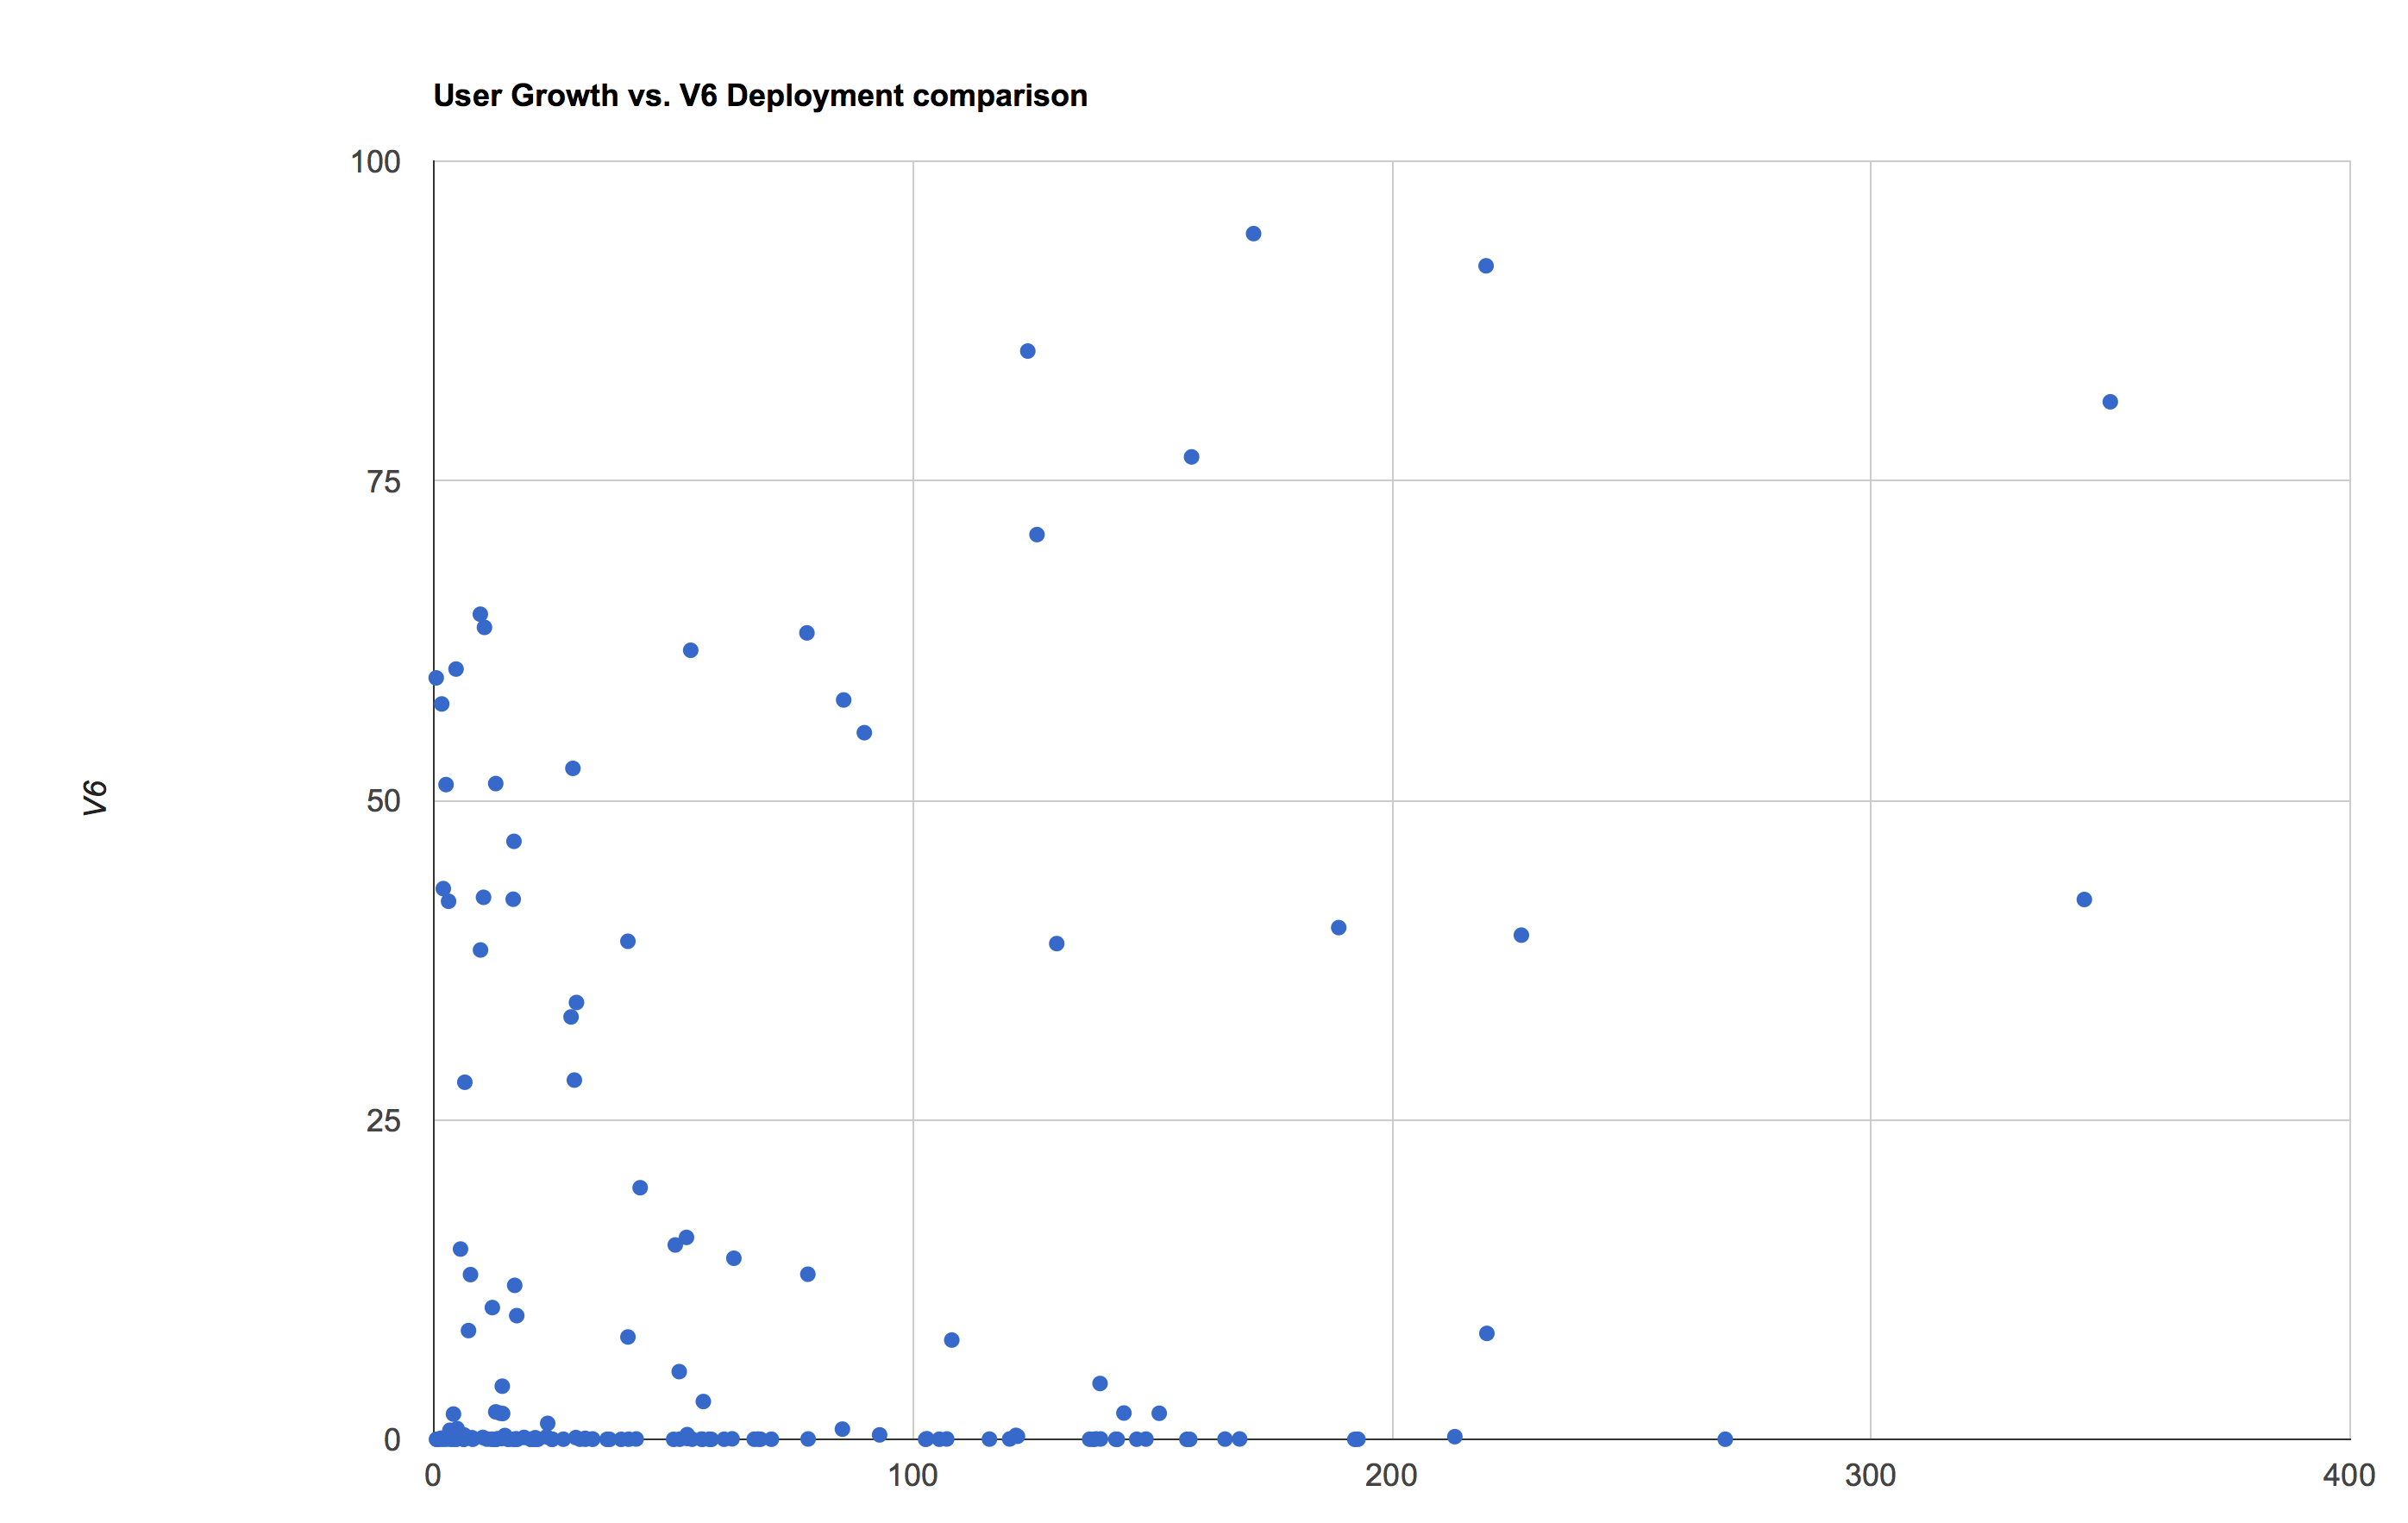 Figure 5 – IPv6 deployment vs ISP growth value for 400 growing ISPs.